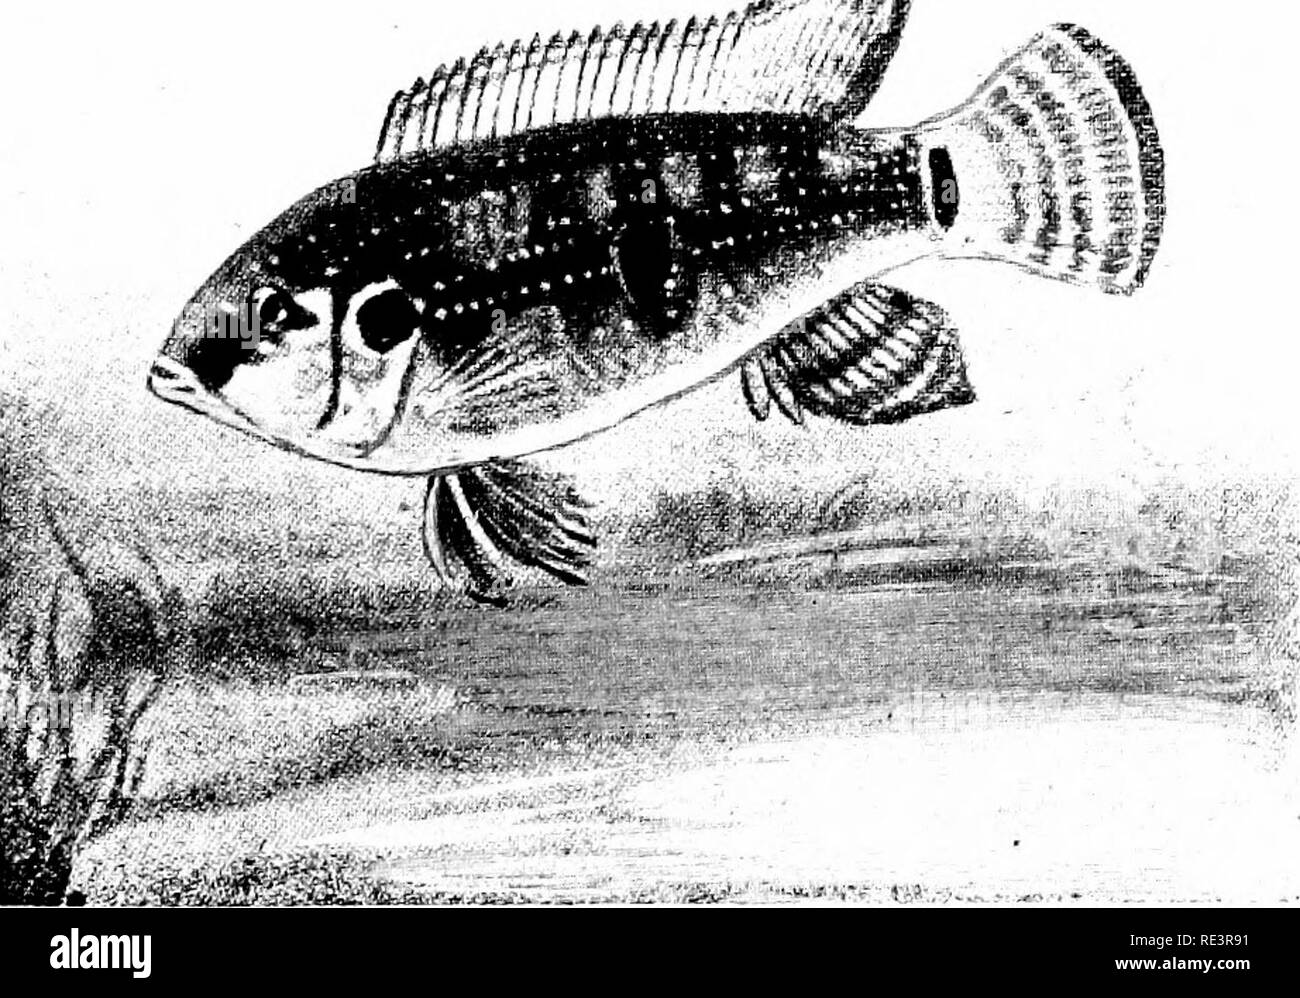 . Goldfish varieties and tropical aquarium fishes; a complete guide to aquaria and related subjects. Aquariums; Goldfish. Fig. 6j. The Chanchito (Hcros facctus) One of the most satisfactory of the Cichlid group of fishes. They will survive in moderately cool water and are not so savage as other members of the group. The breeding habits and family life of a mated pair are most interesting to watch. The upper figure shows the more rounded dorsal fin of the female, although it is not always so pronounced as shown here. See pages 254 (B 5) and 261 (N 6). .^^. Viy. 64. Hcmichroniis himm-uUita (Thrr Stock Photo